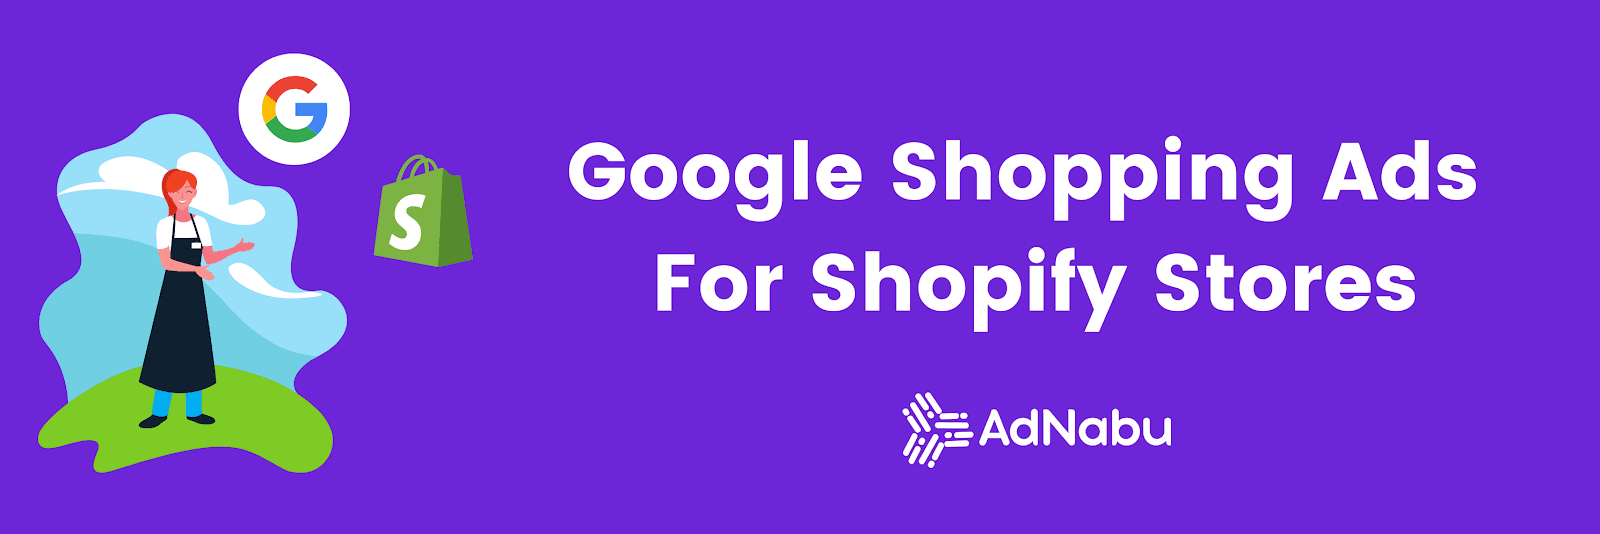 Google shopping ads for shopify stores